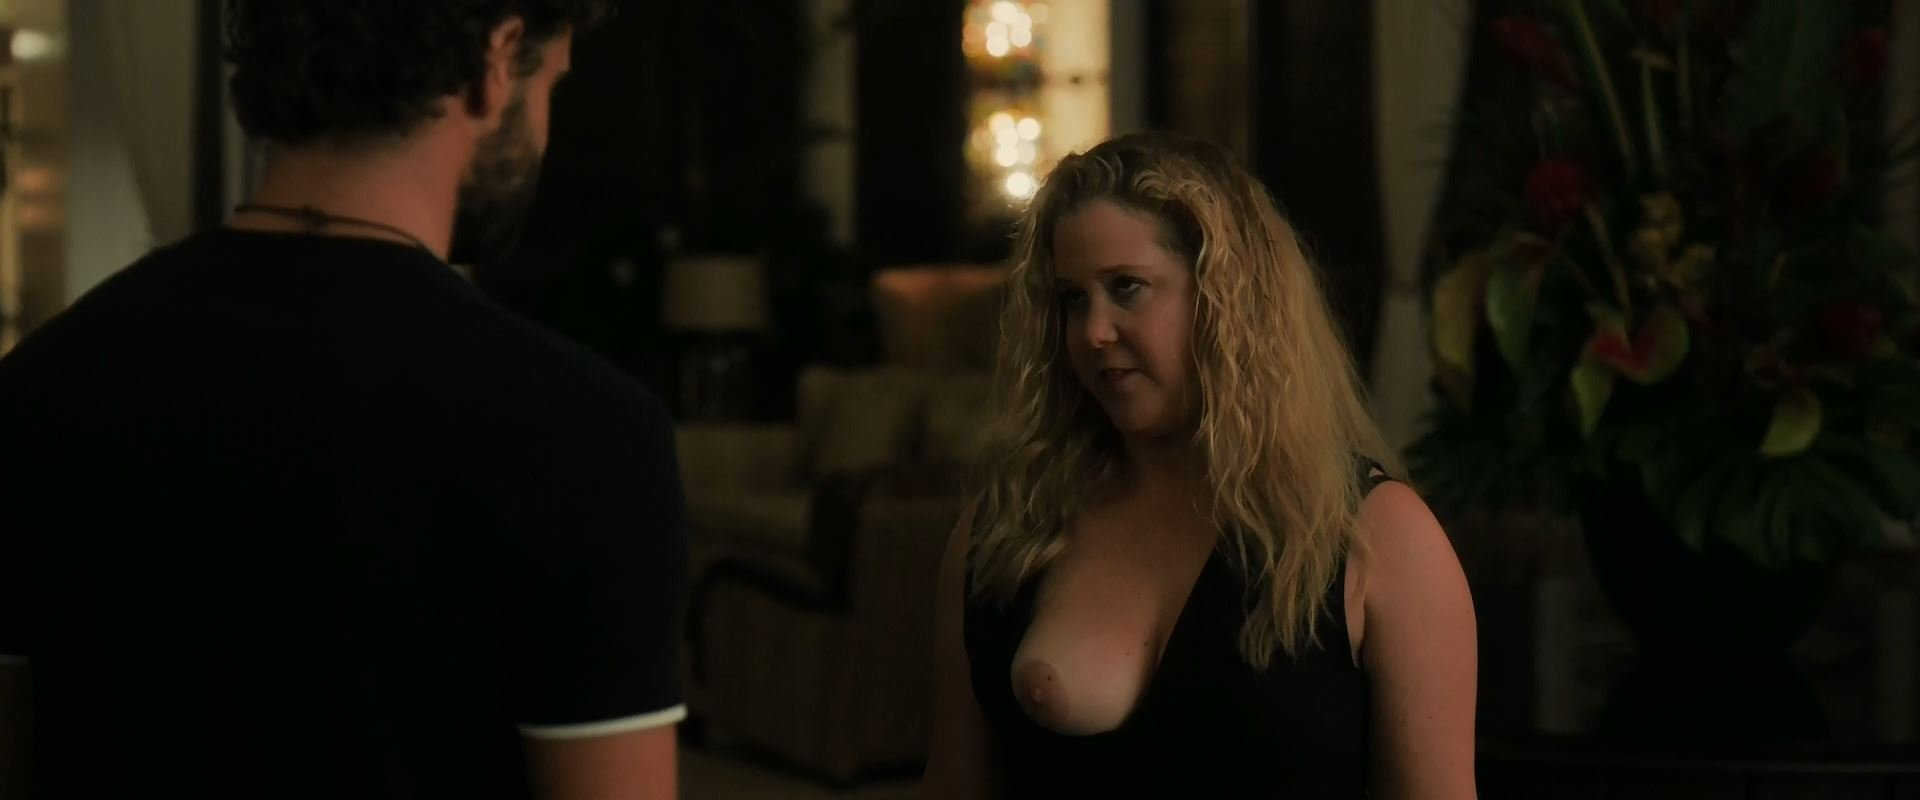 sexy nude amy schumer